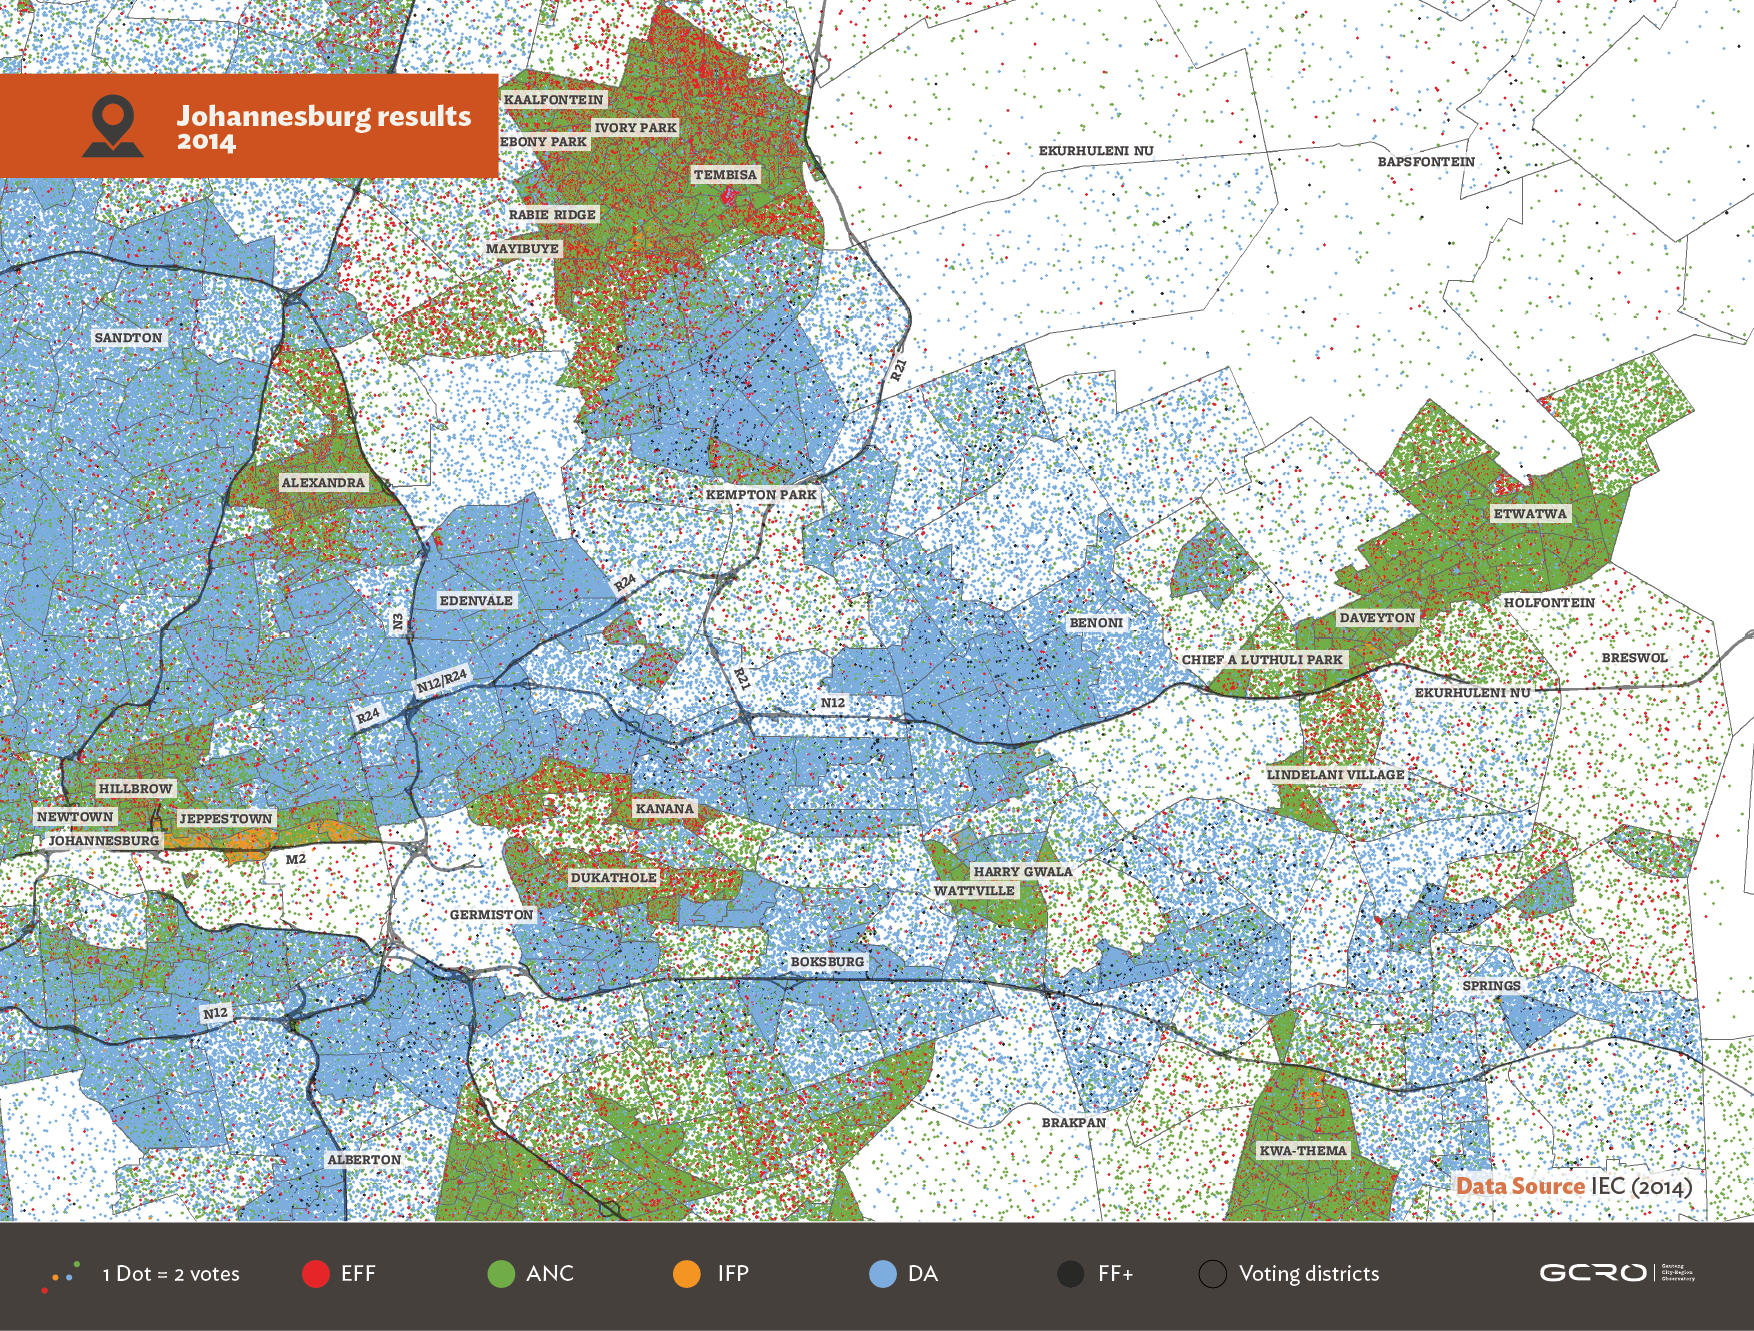 5. Elections 2019_Zoomed in Maps_J_2014_v2